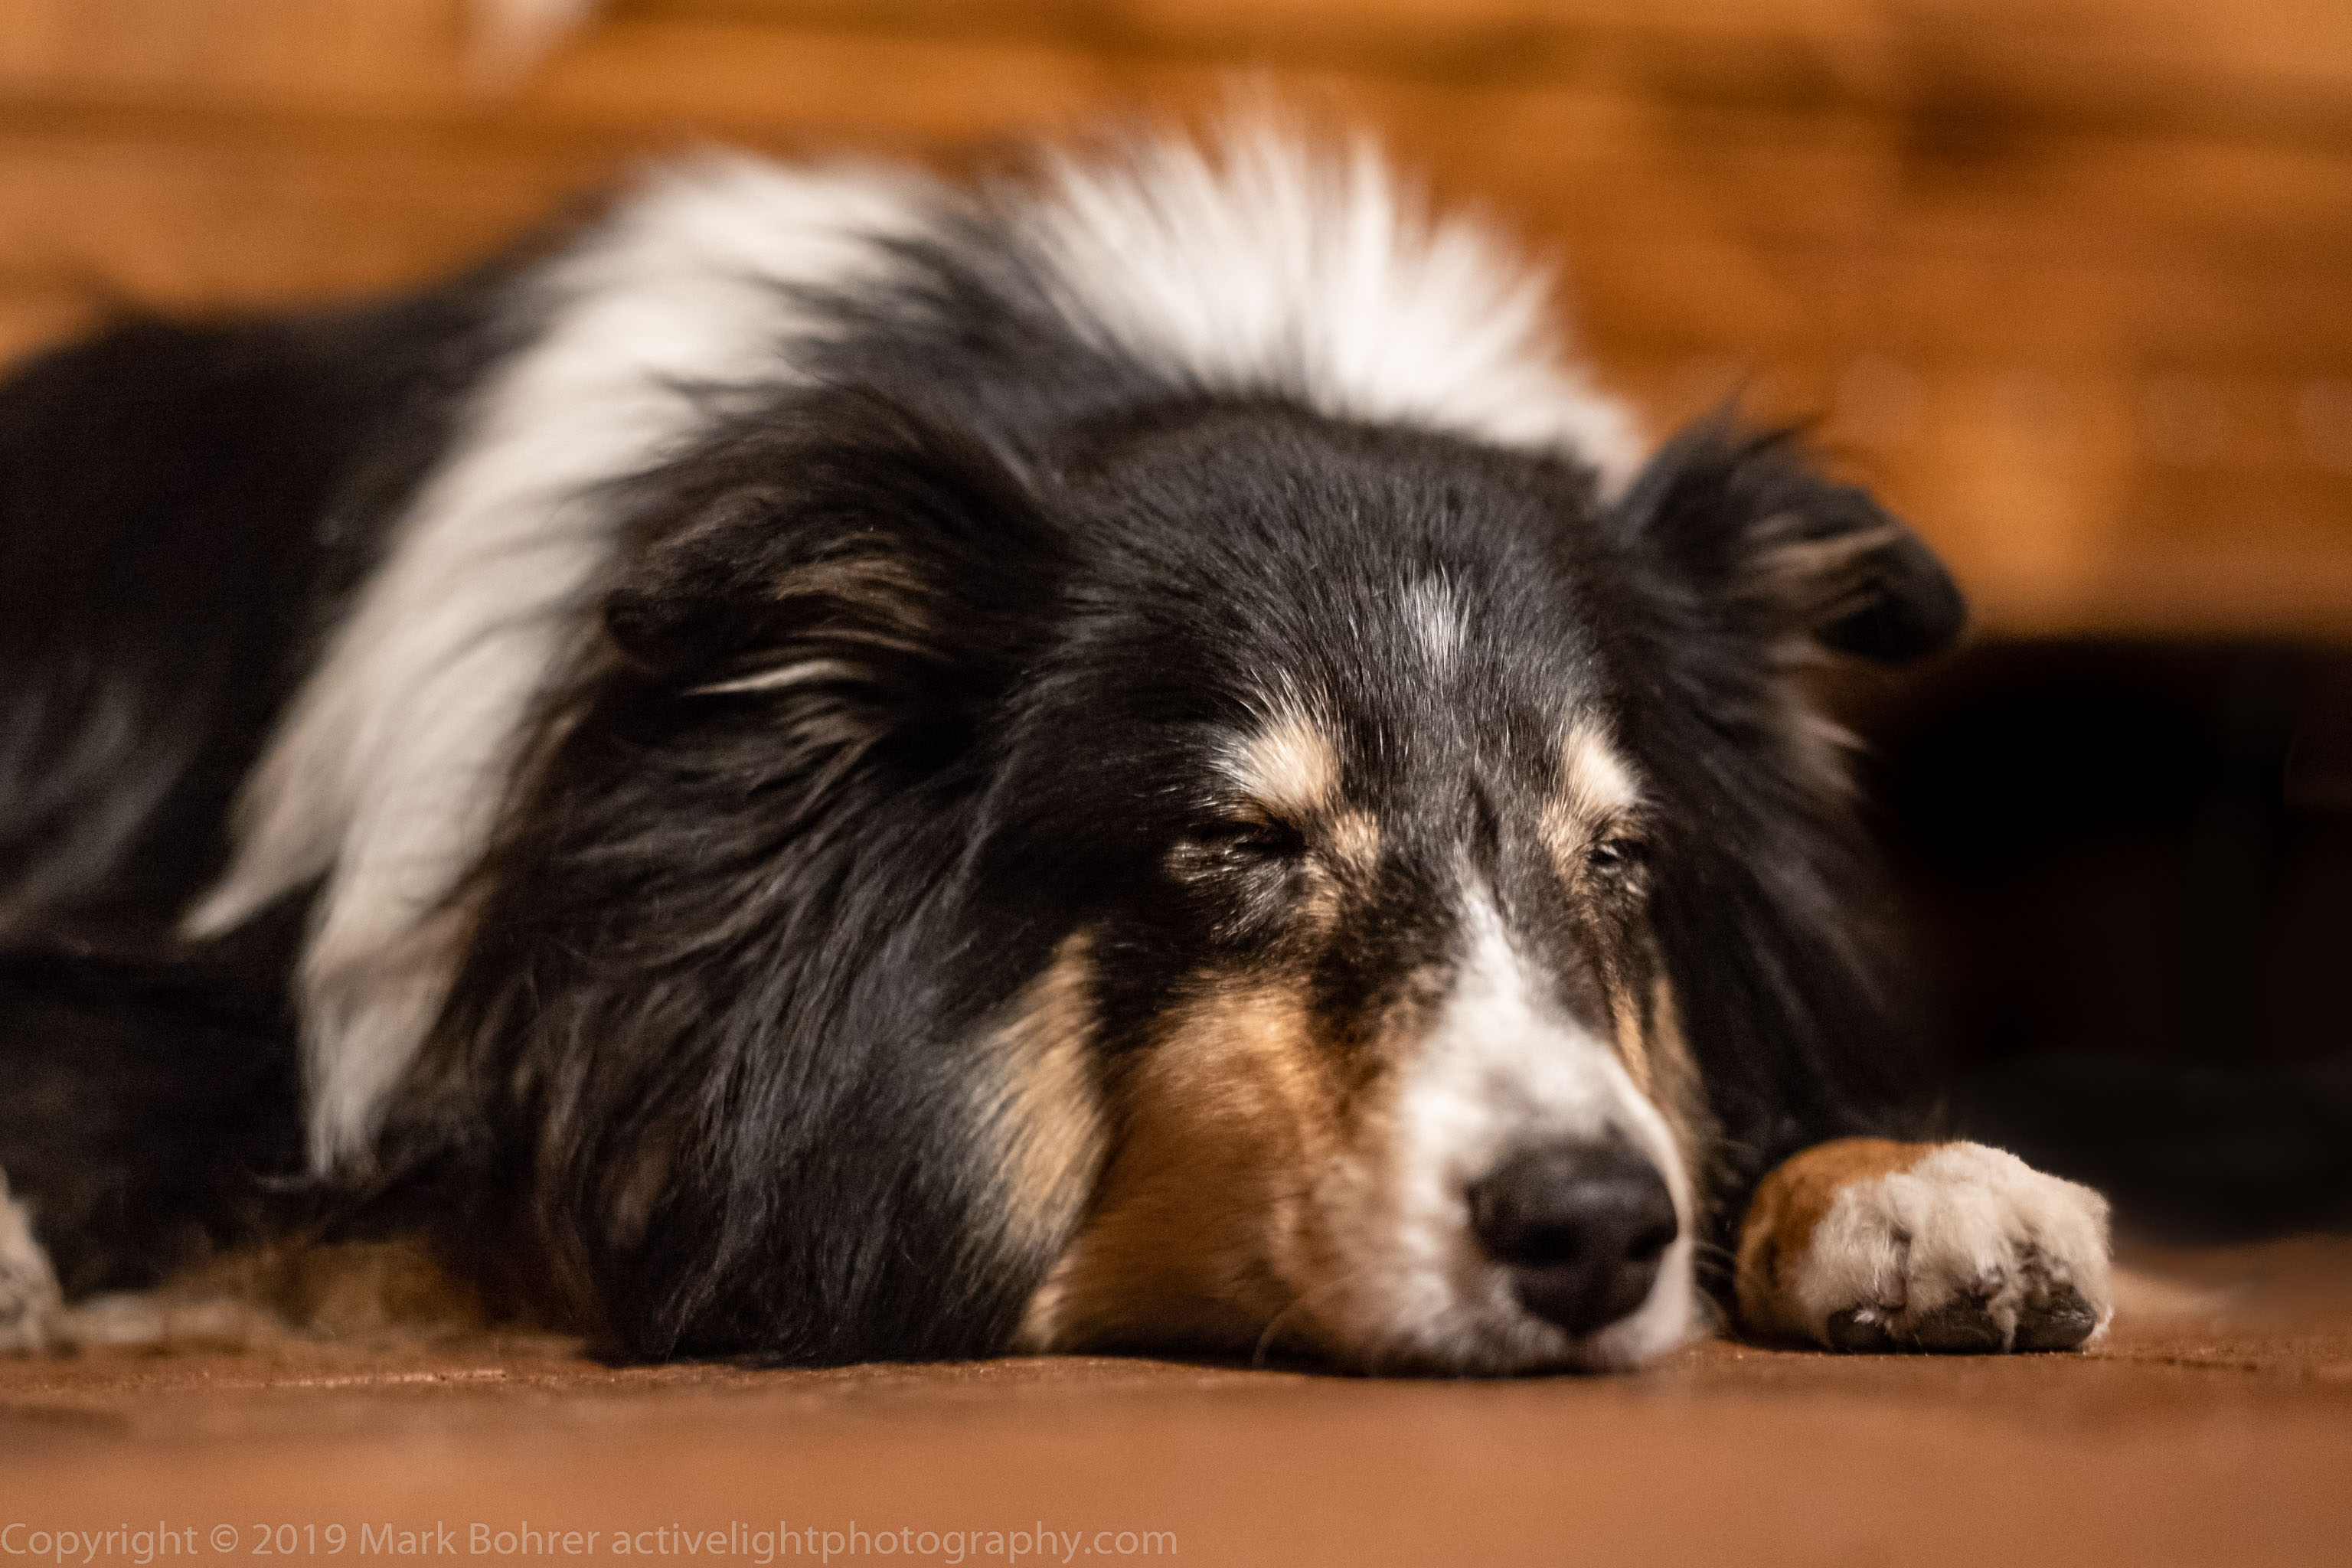 Buzz snoozing - with 50mm f/2 Summitar from 1949